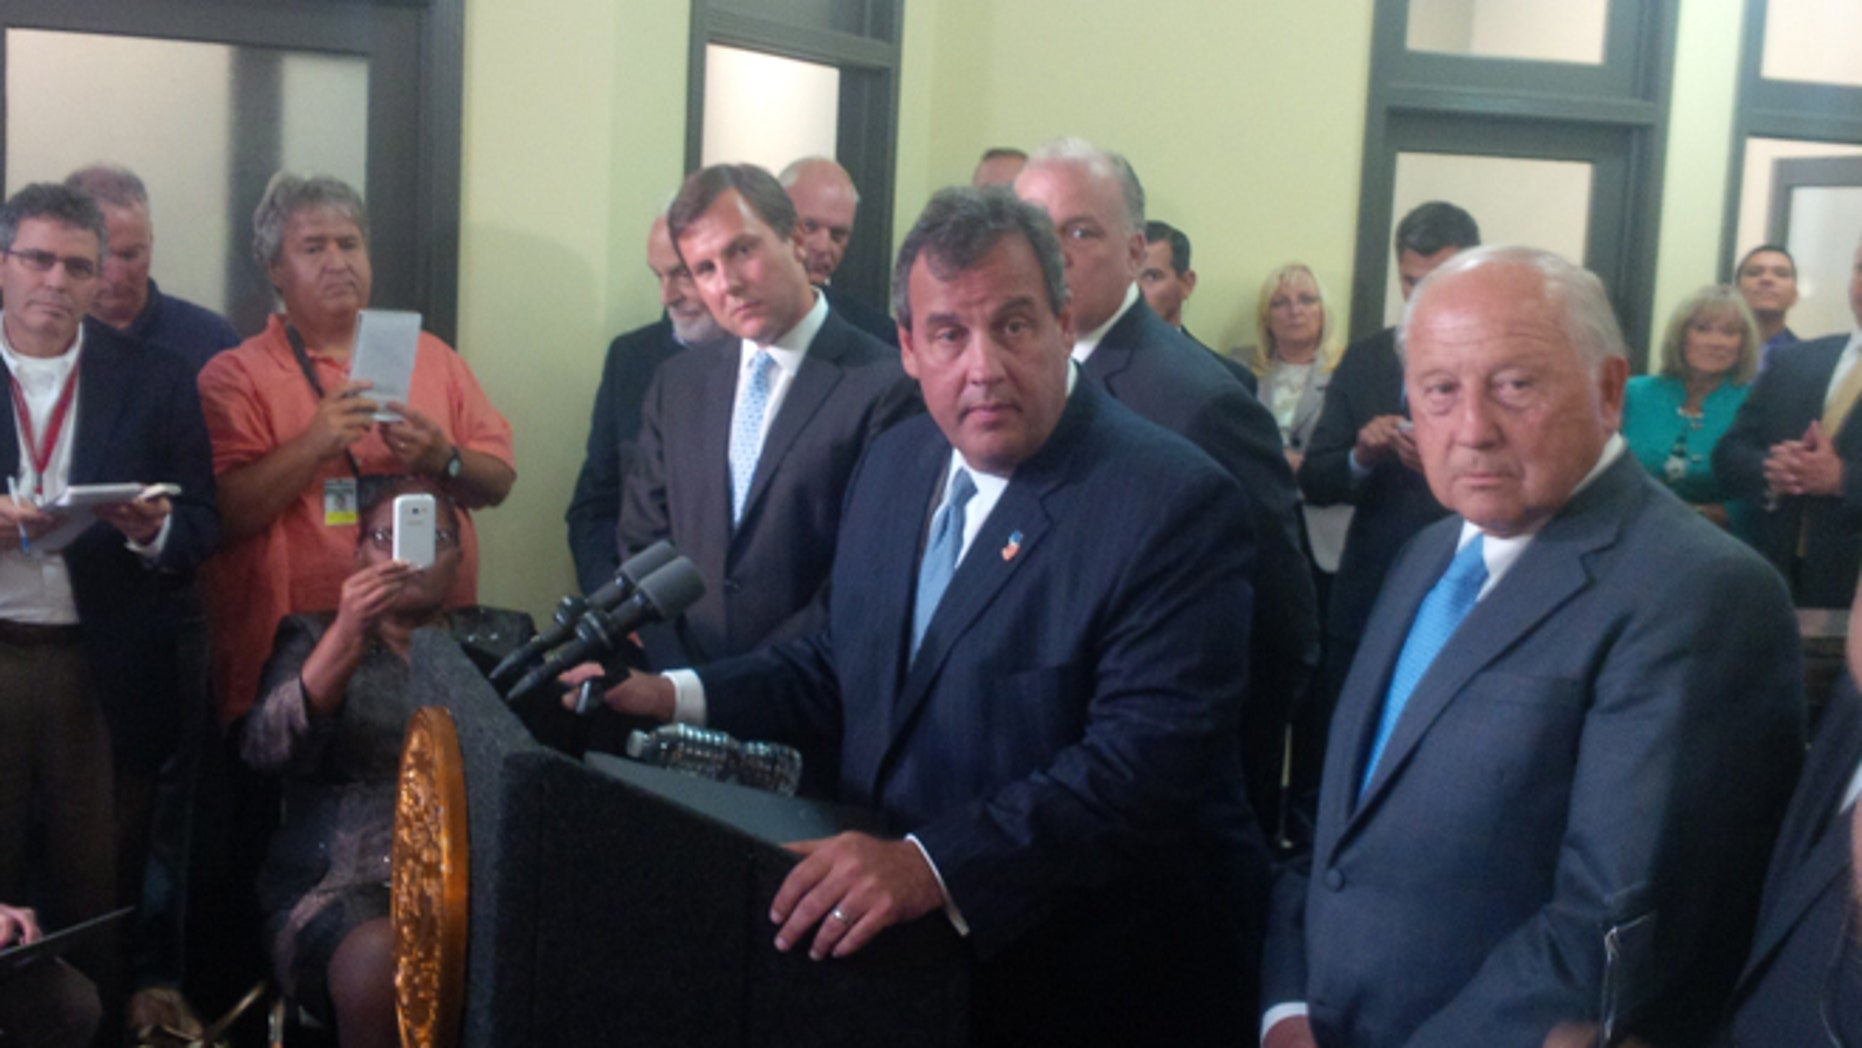 FILE: Sept. 8, 2014: New Jersey Gov. Chris Christie talks after a summit in Atlantic City, N.J., on how to help the resort after casino closings.